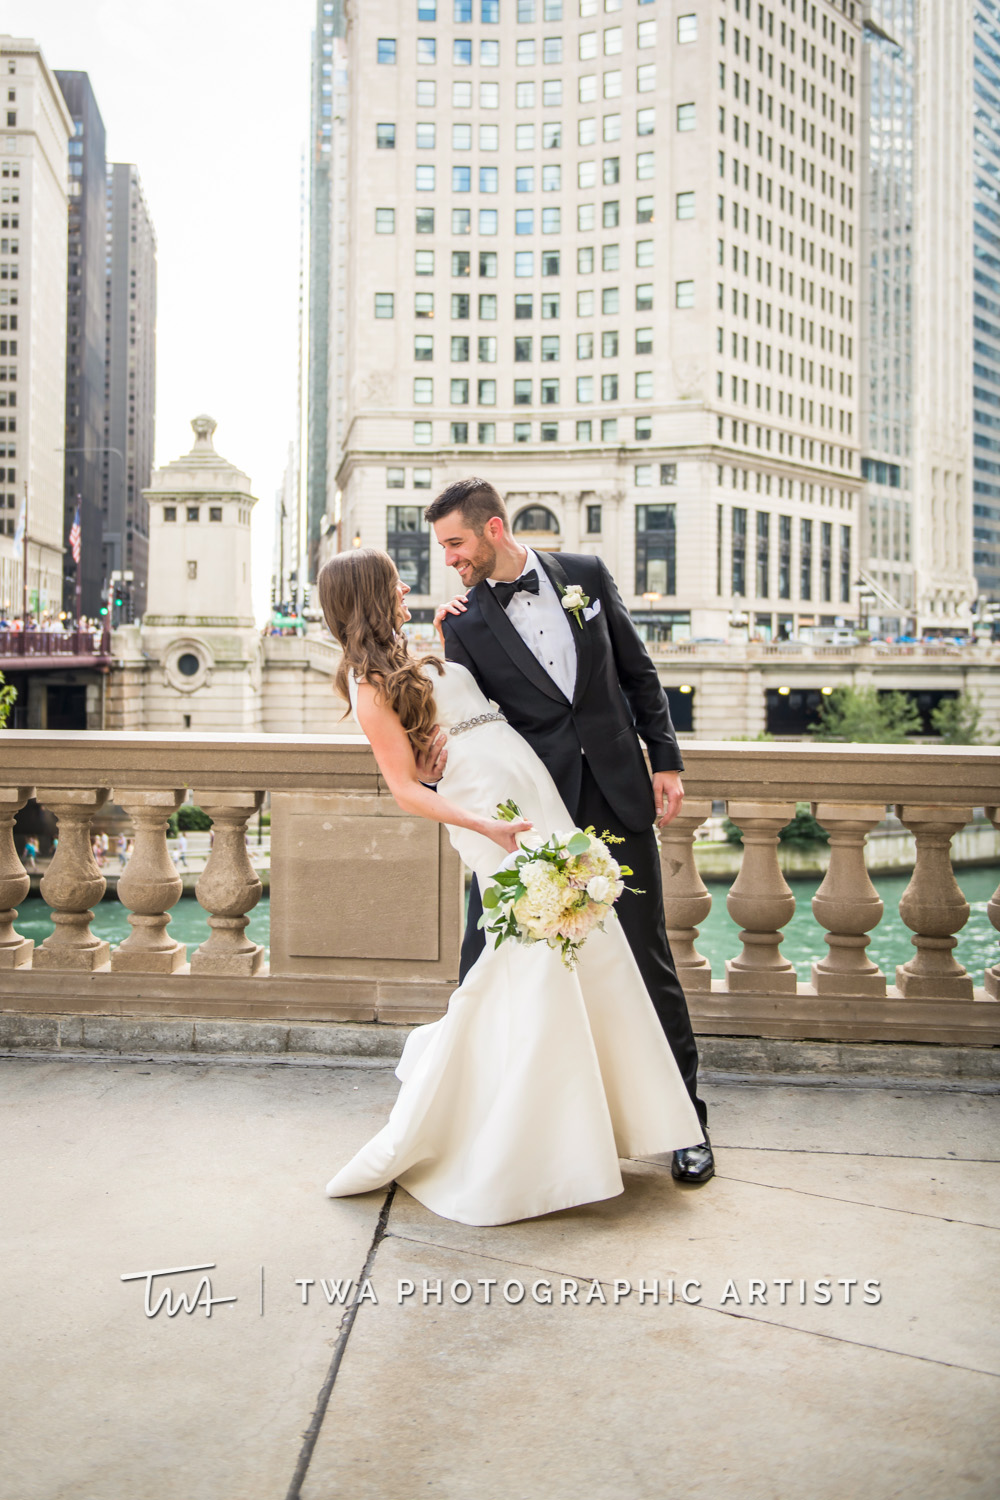 Brynn & Ryan's Chicago Yacht Wedding